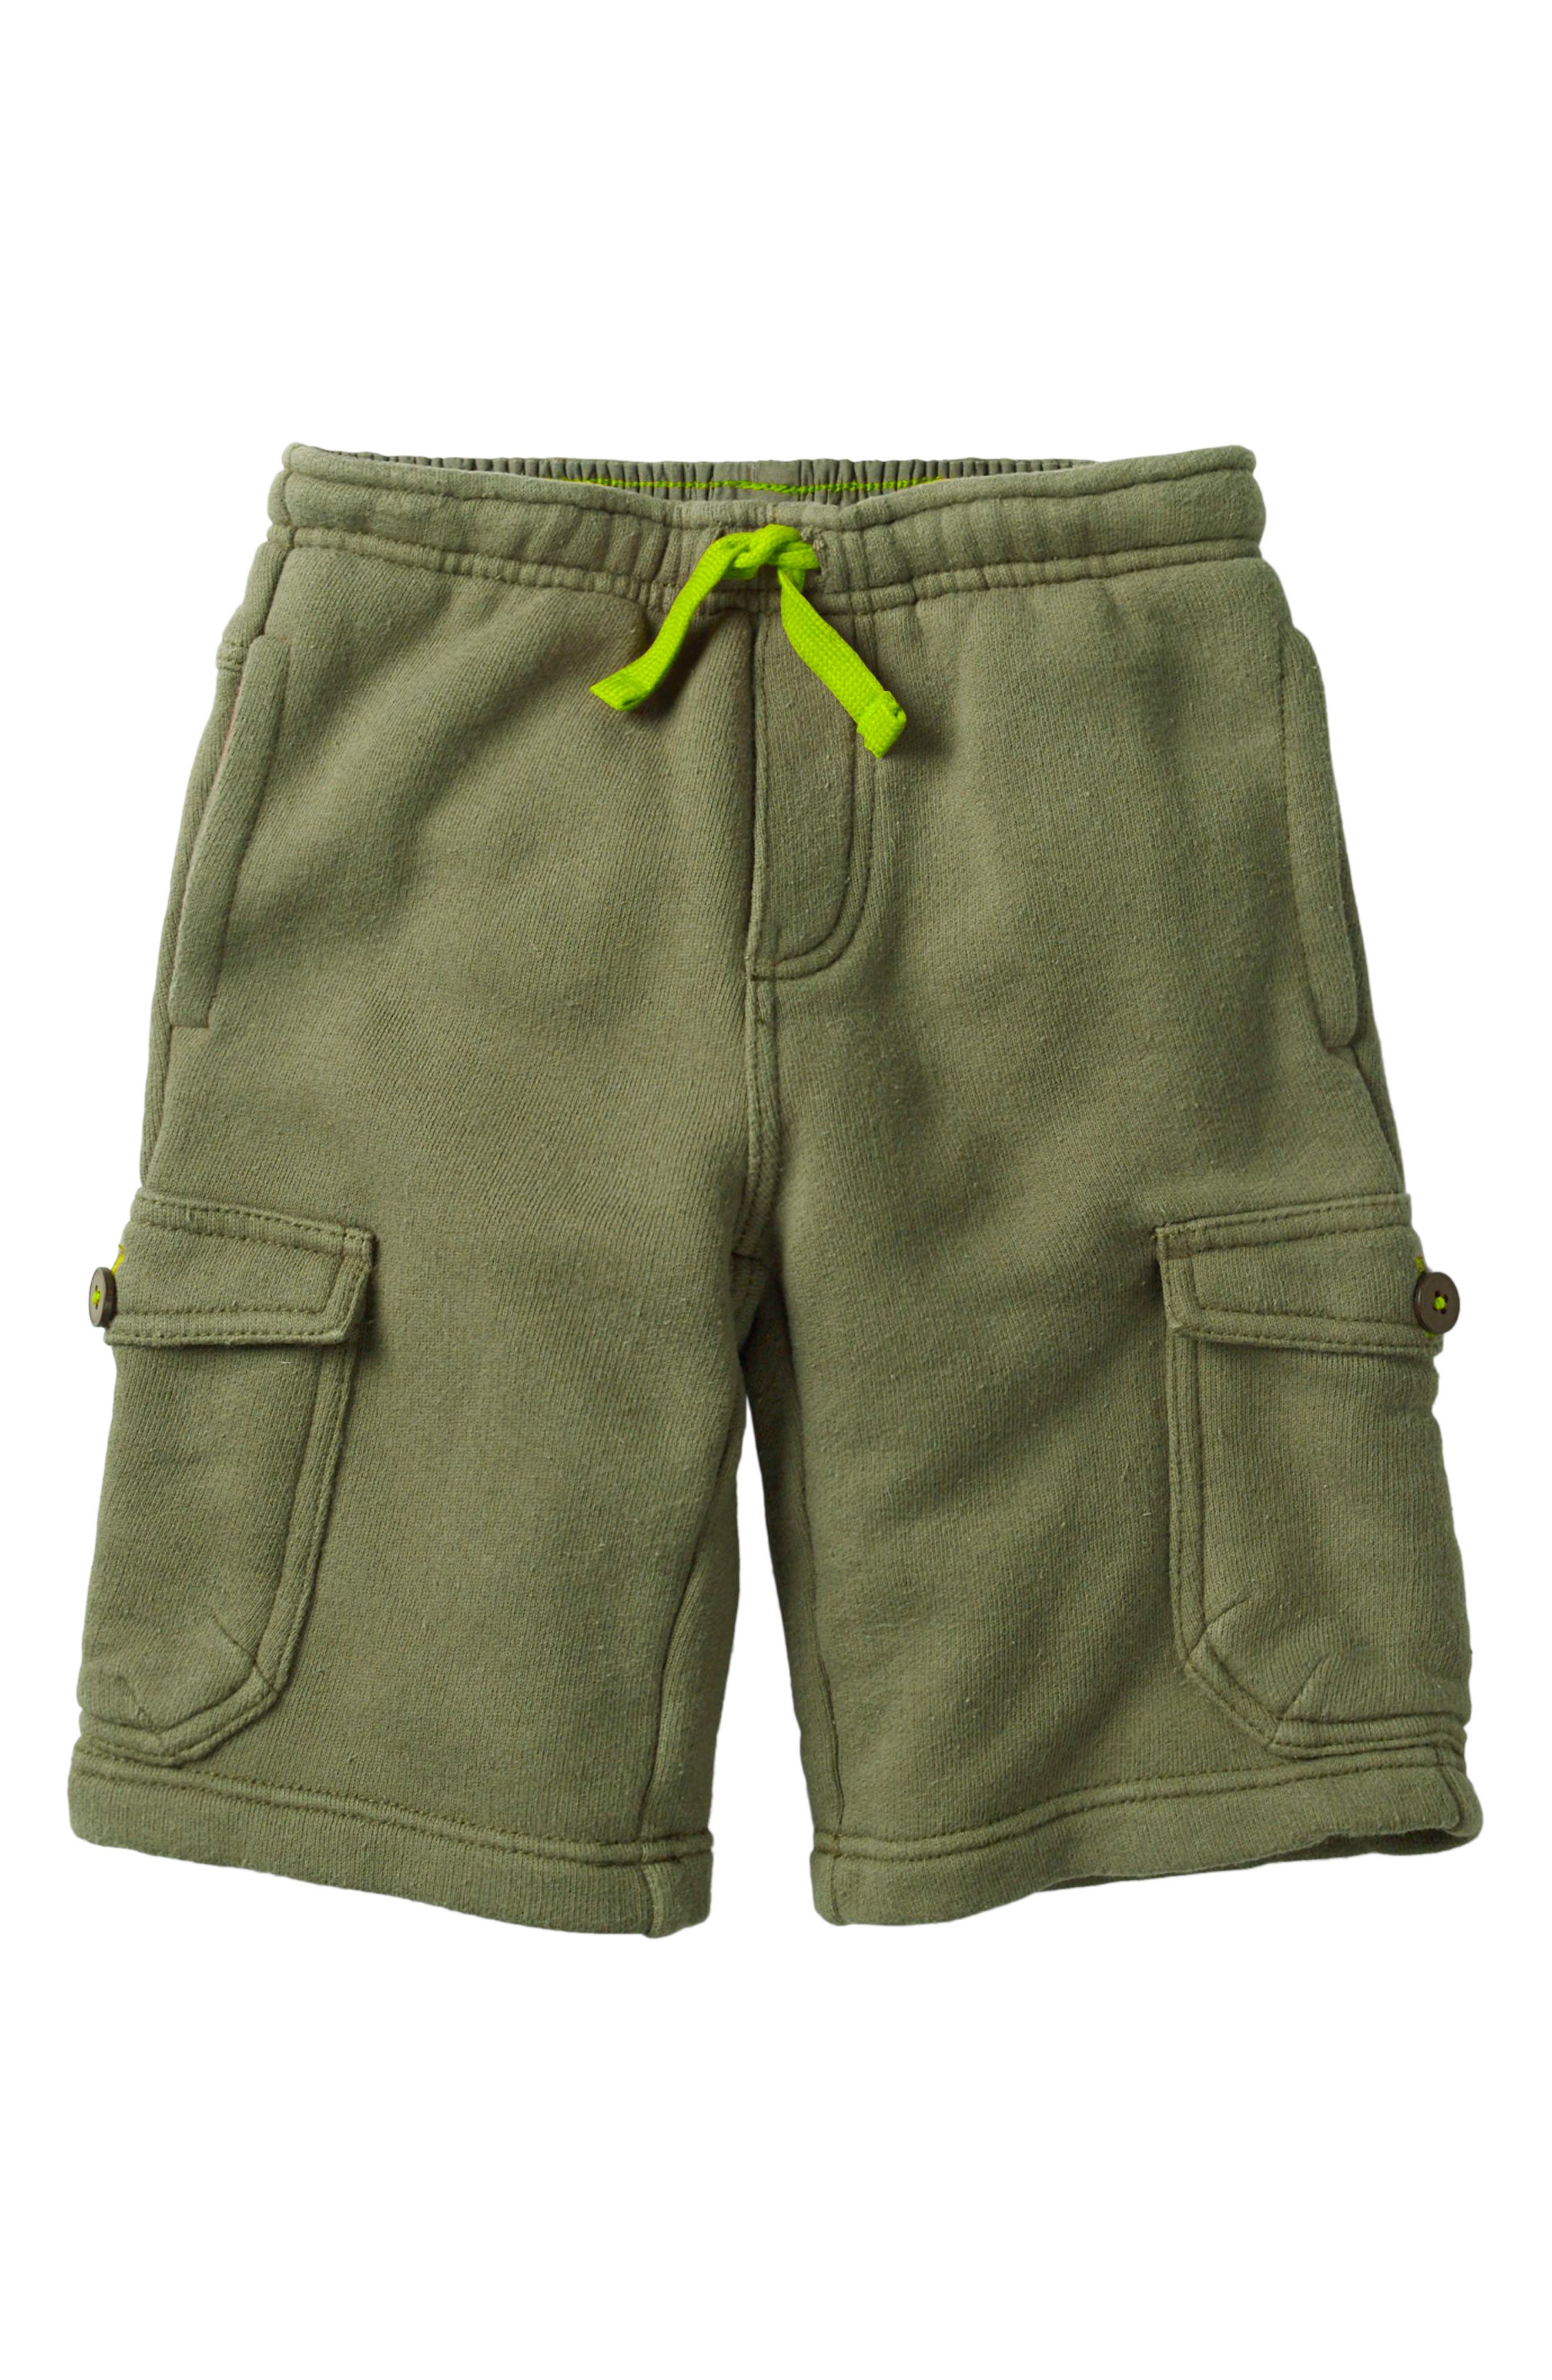 Jersey Cargo Shorts,                         Main,                         color, 304